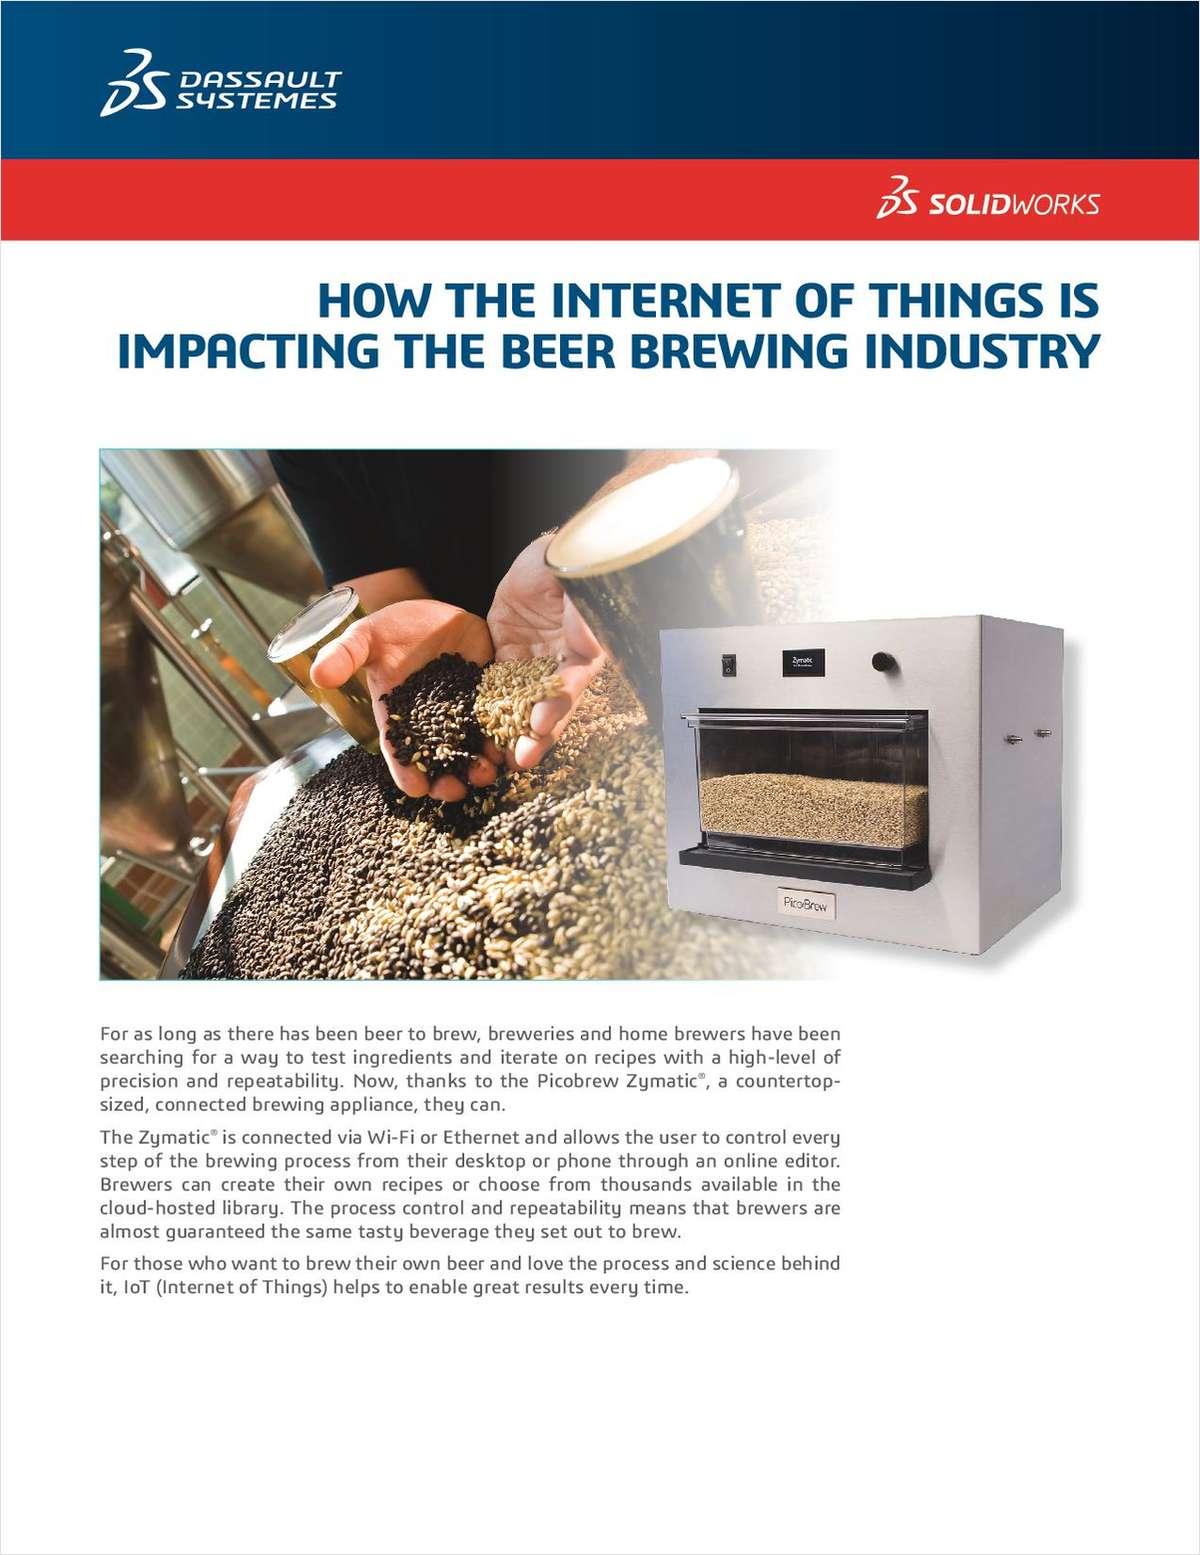 Beer Brewing Gets Smart with the Internet of Things